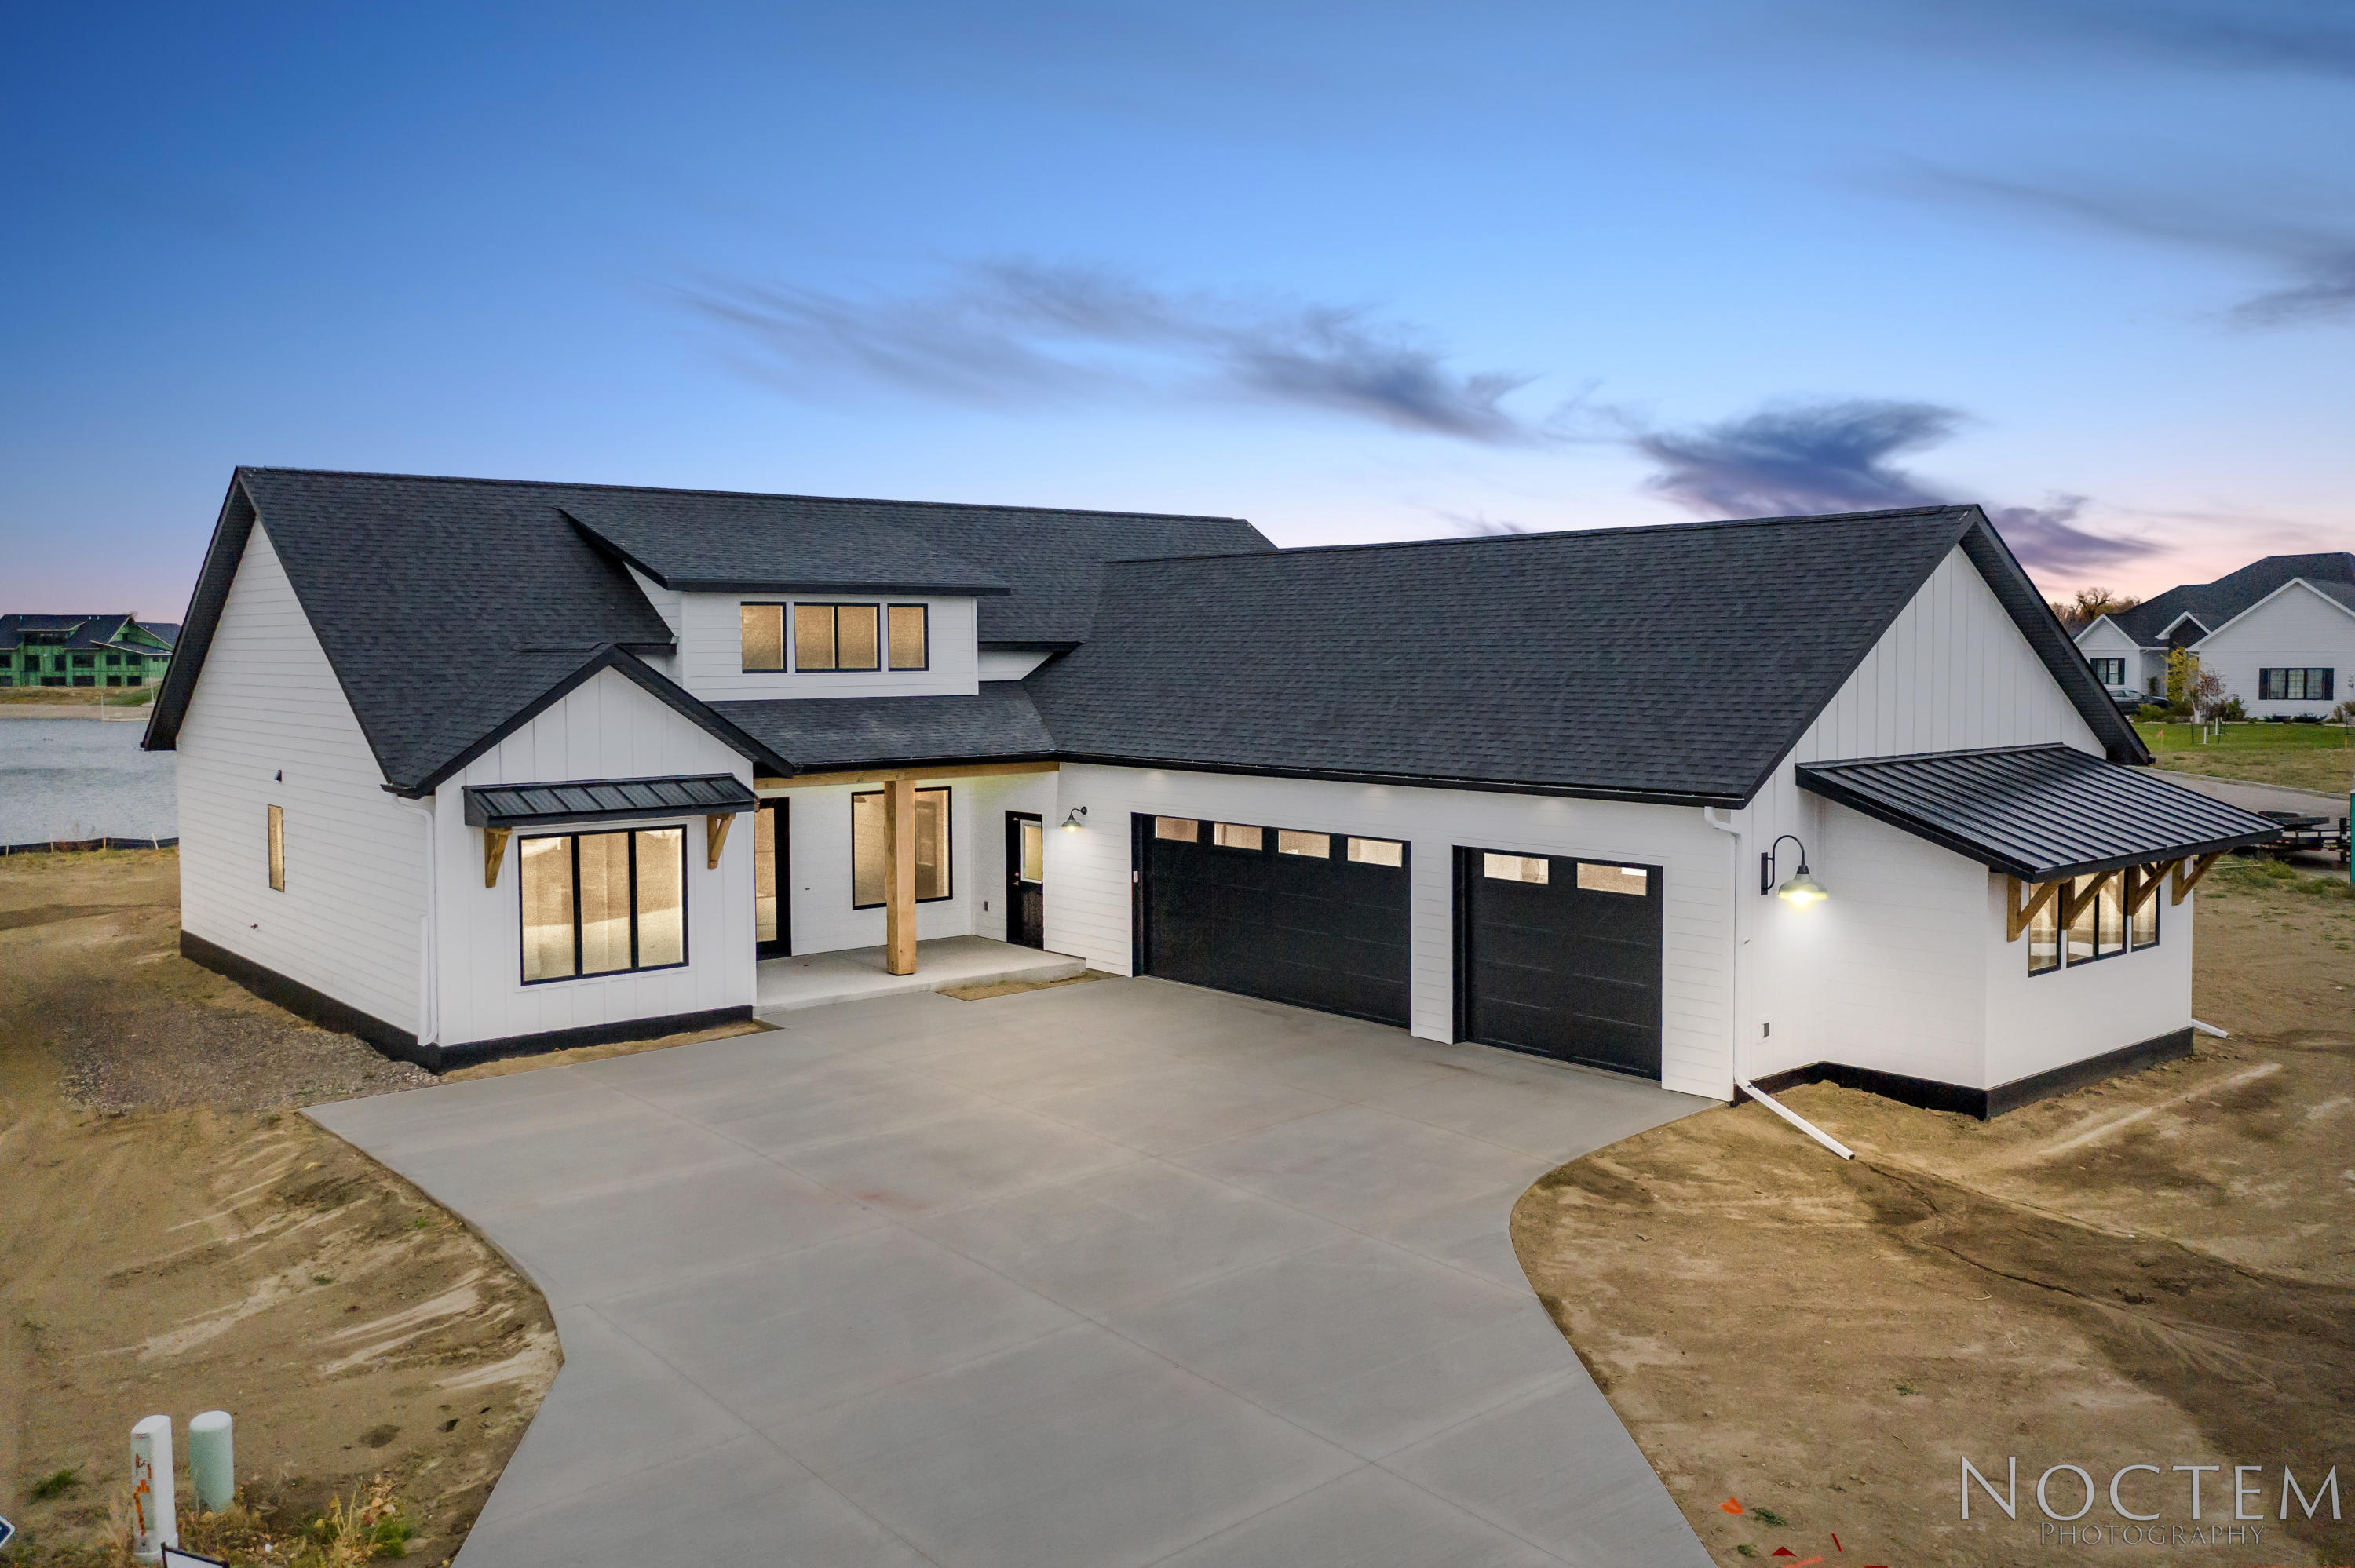 https www dakotaplainsrealty com homes for sale in nd mn display action details mls id nd bmbor mls no 408812 total listings 1540 lpp 20 display page 1 index 1